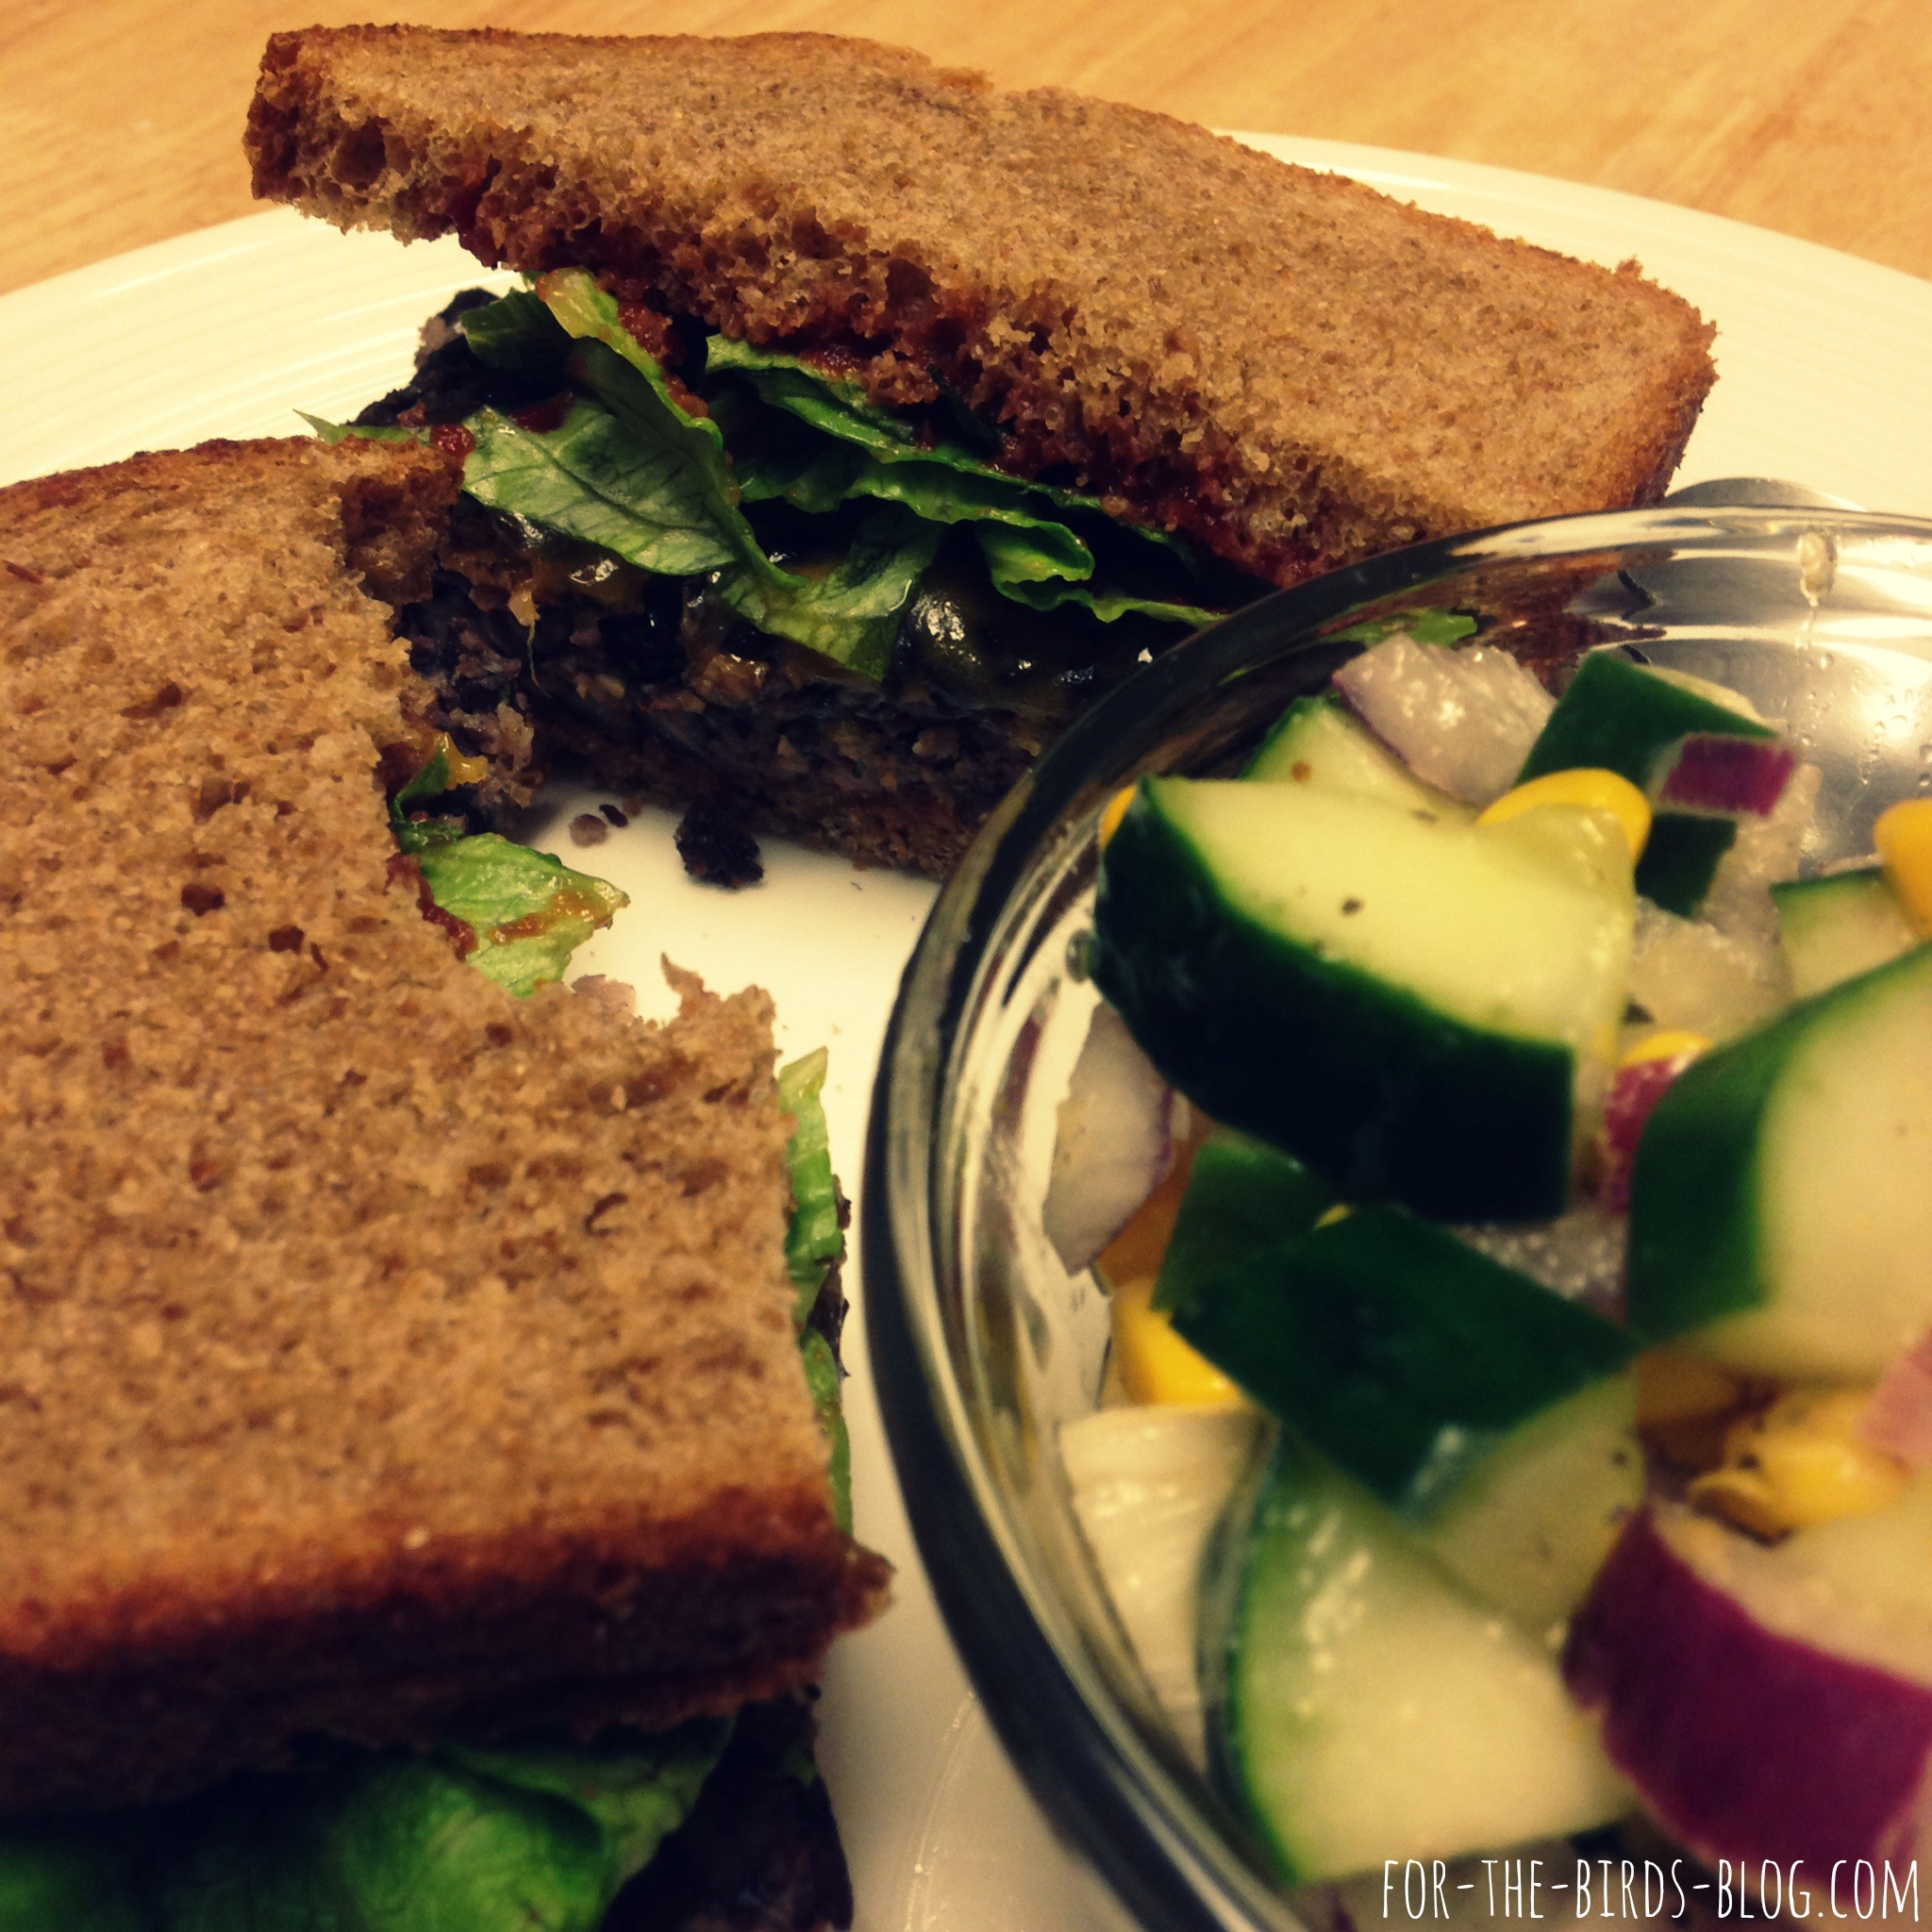 Let the record show that these patties are delicious even on loaf bread. ;)